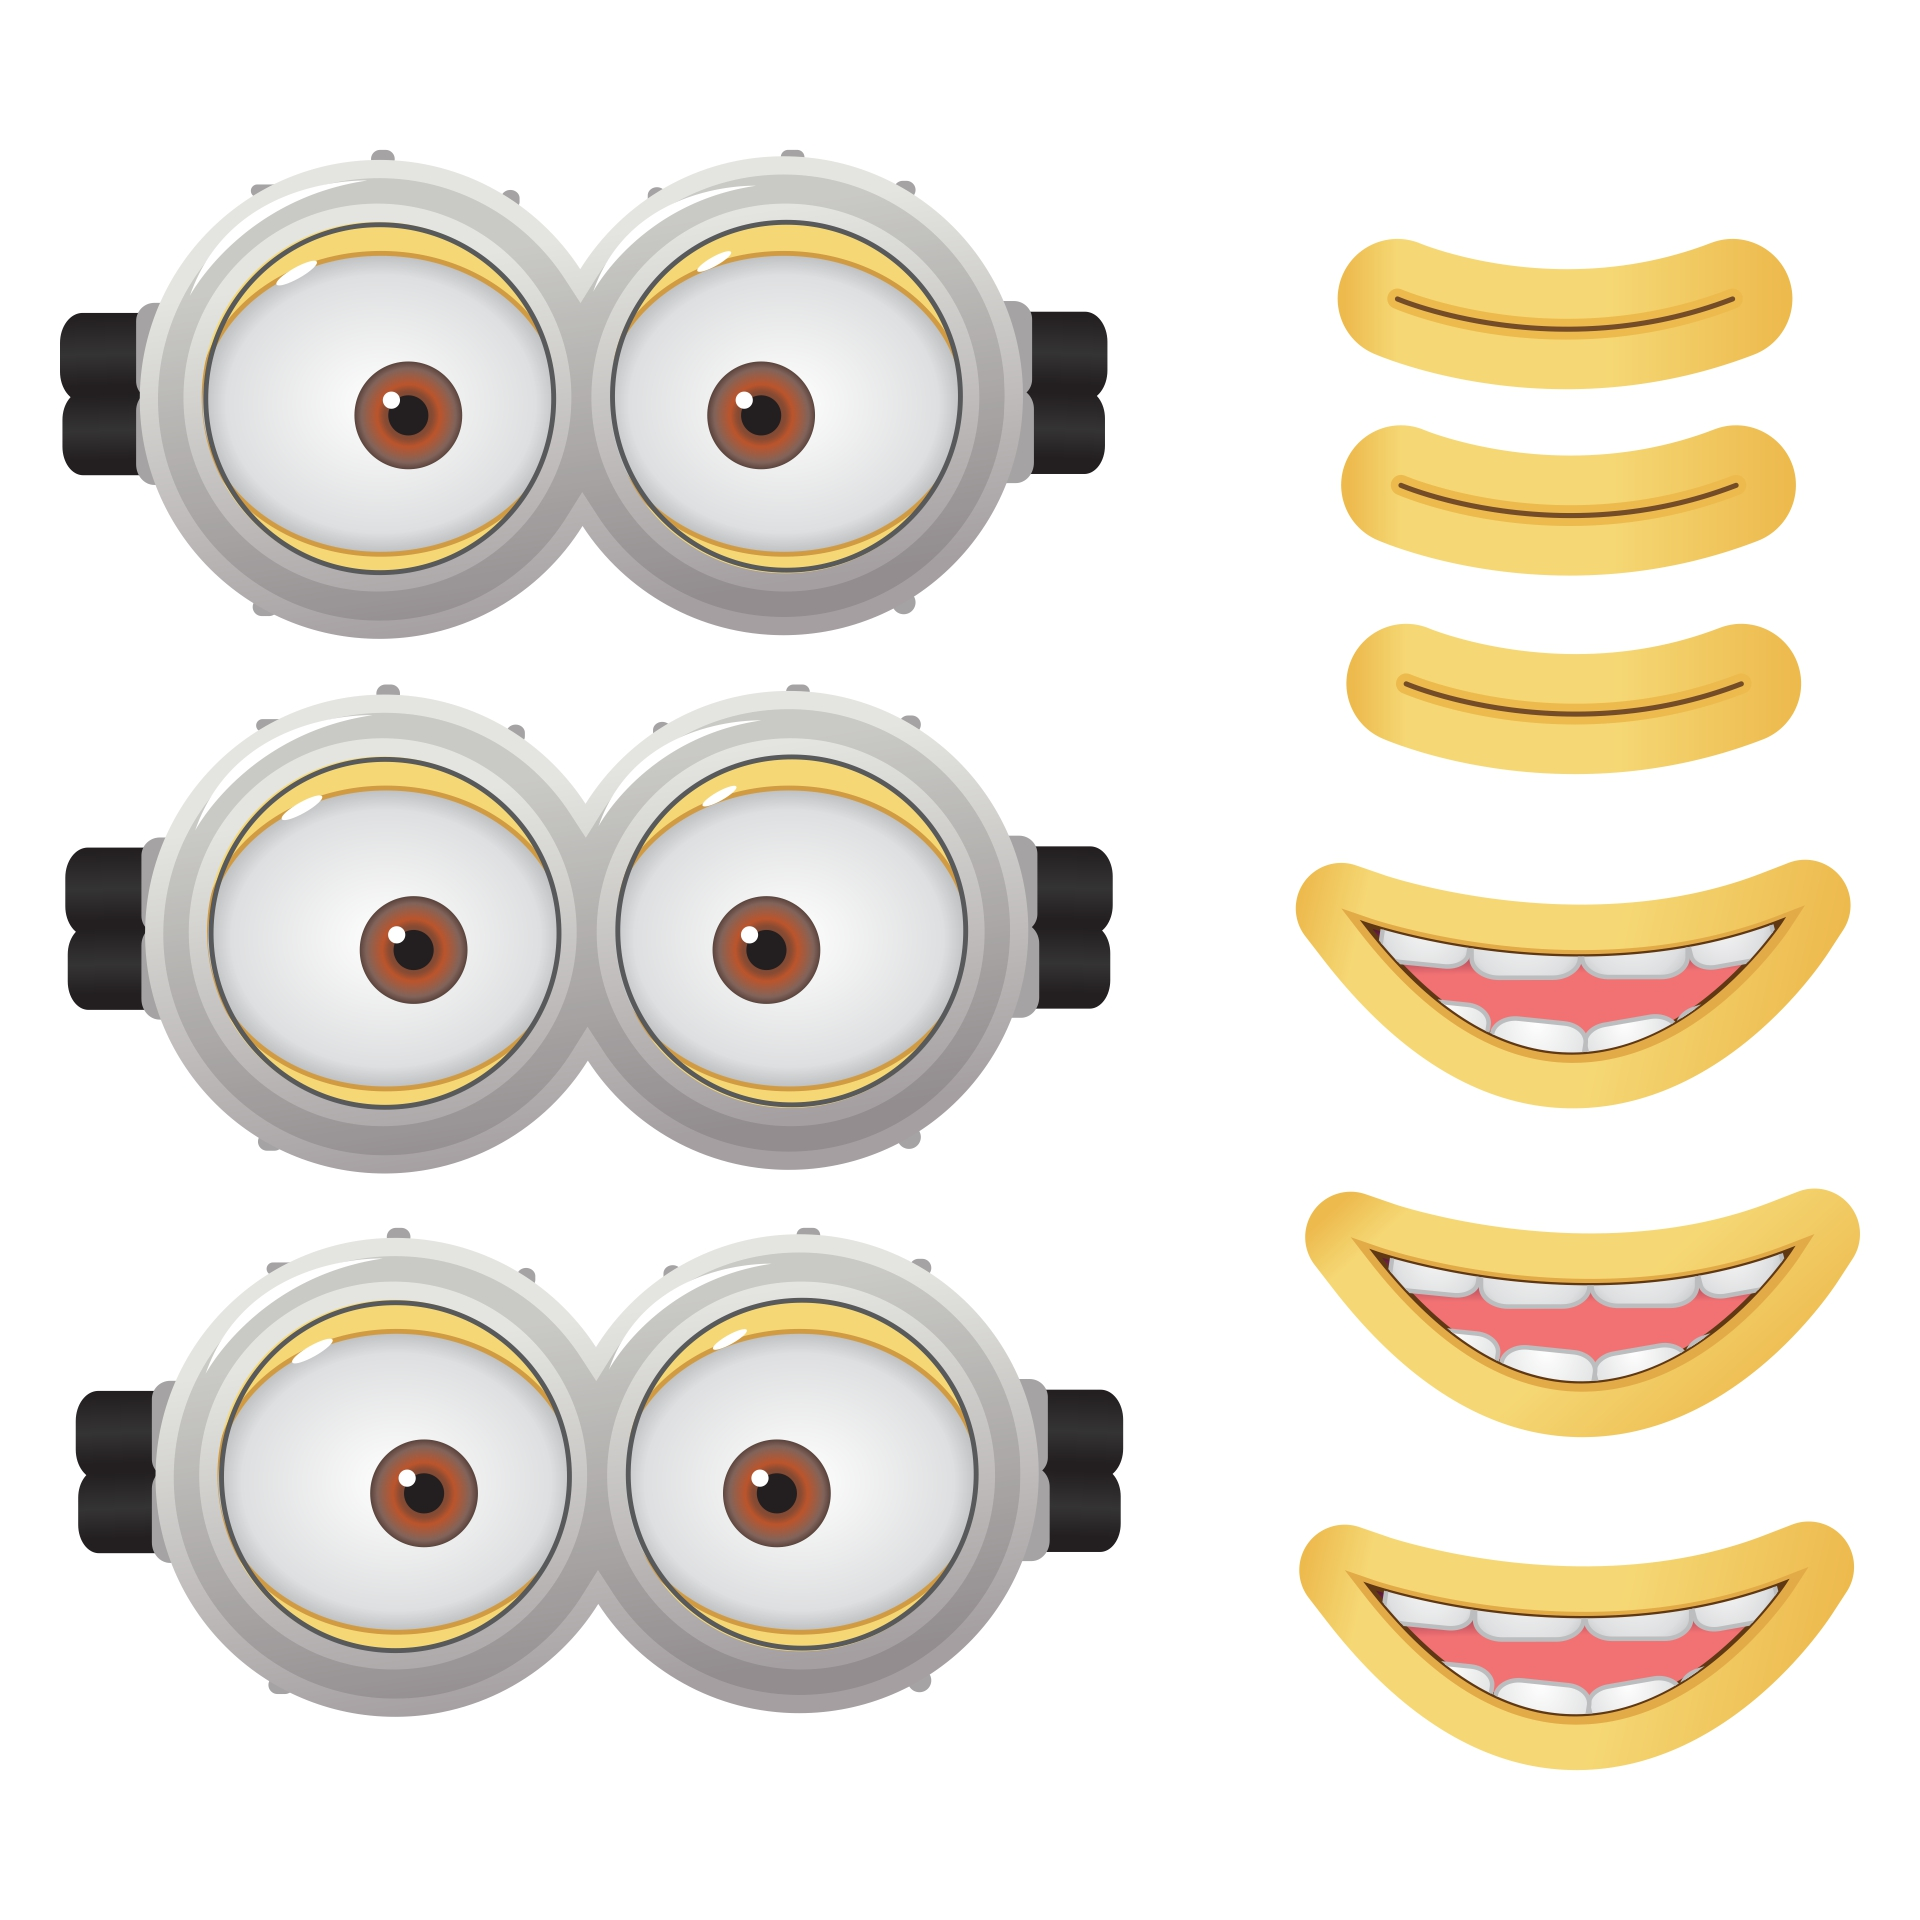 image regarding Minion Printable Eyes named Minion Goggle Template. minion goggles template minion